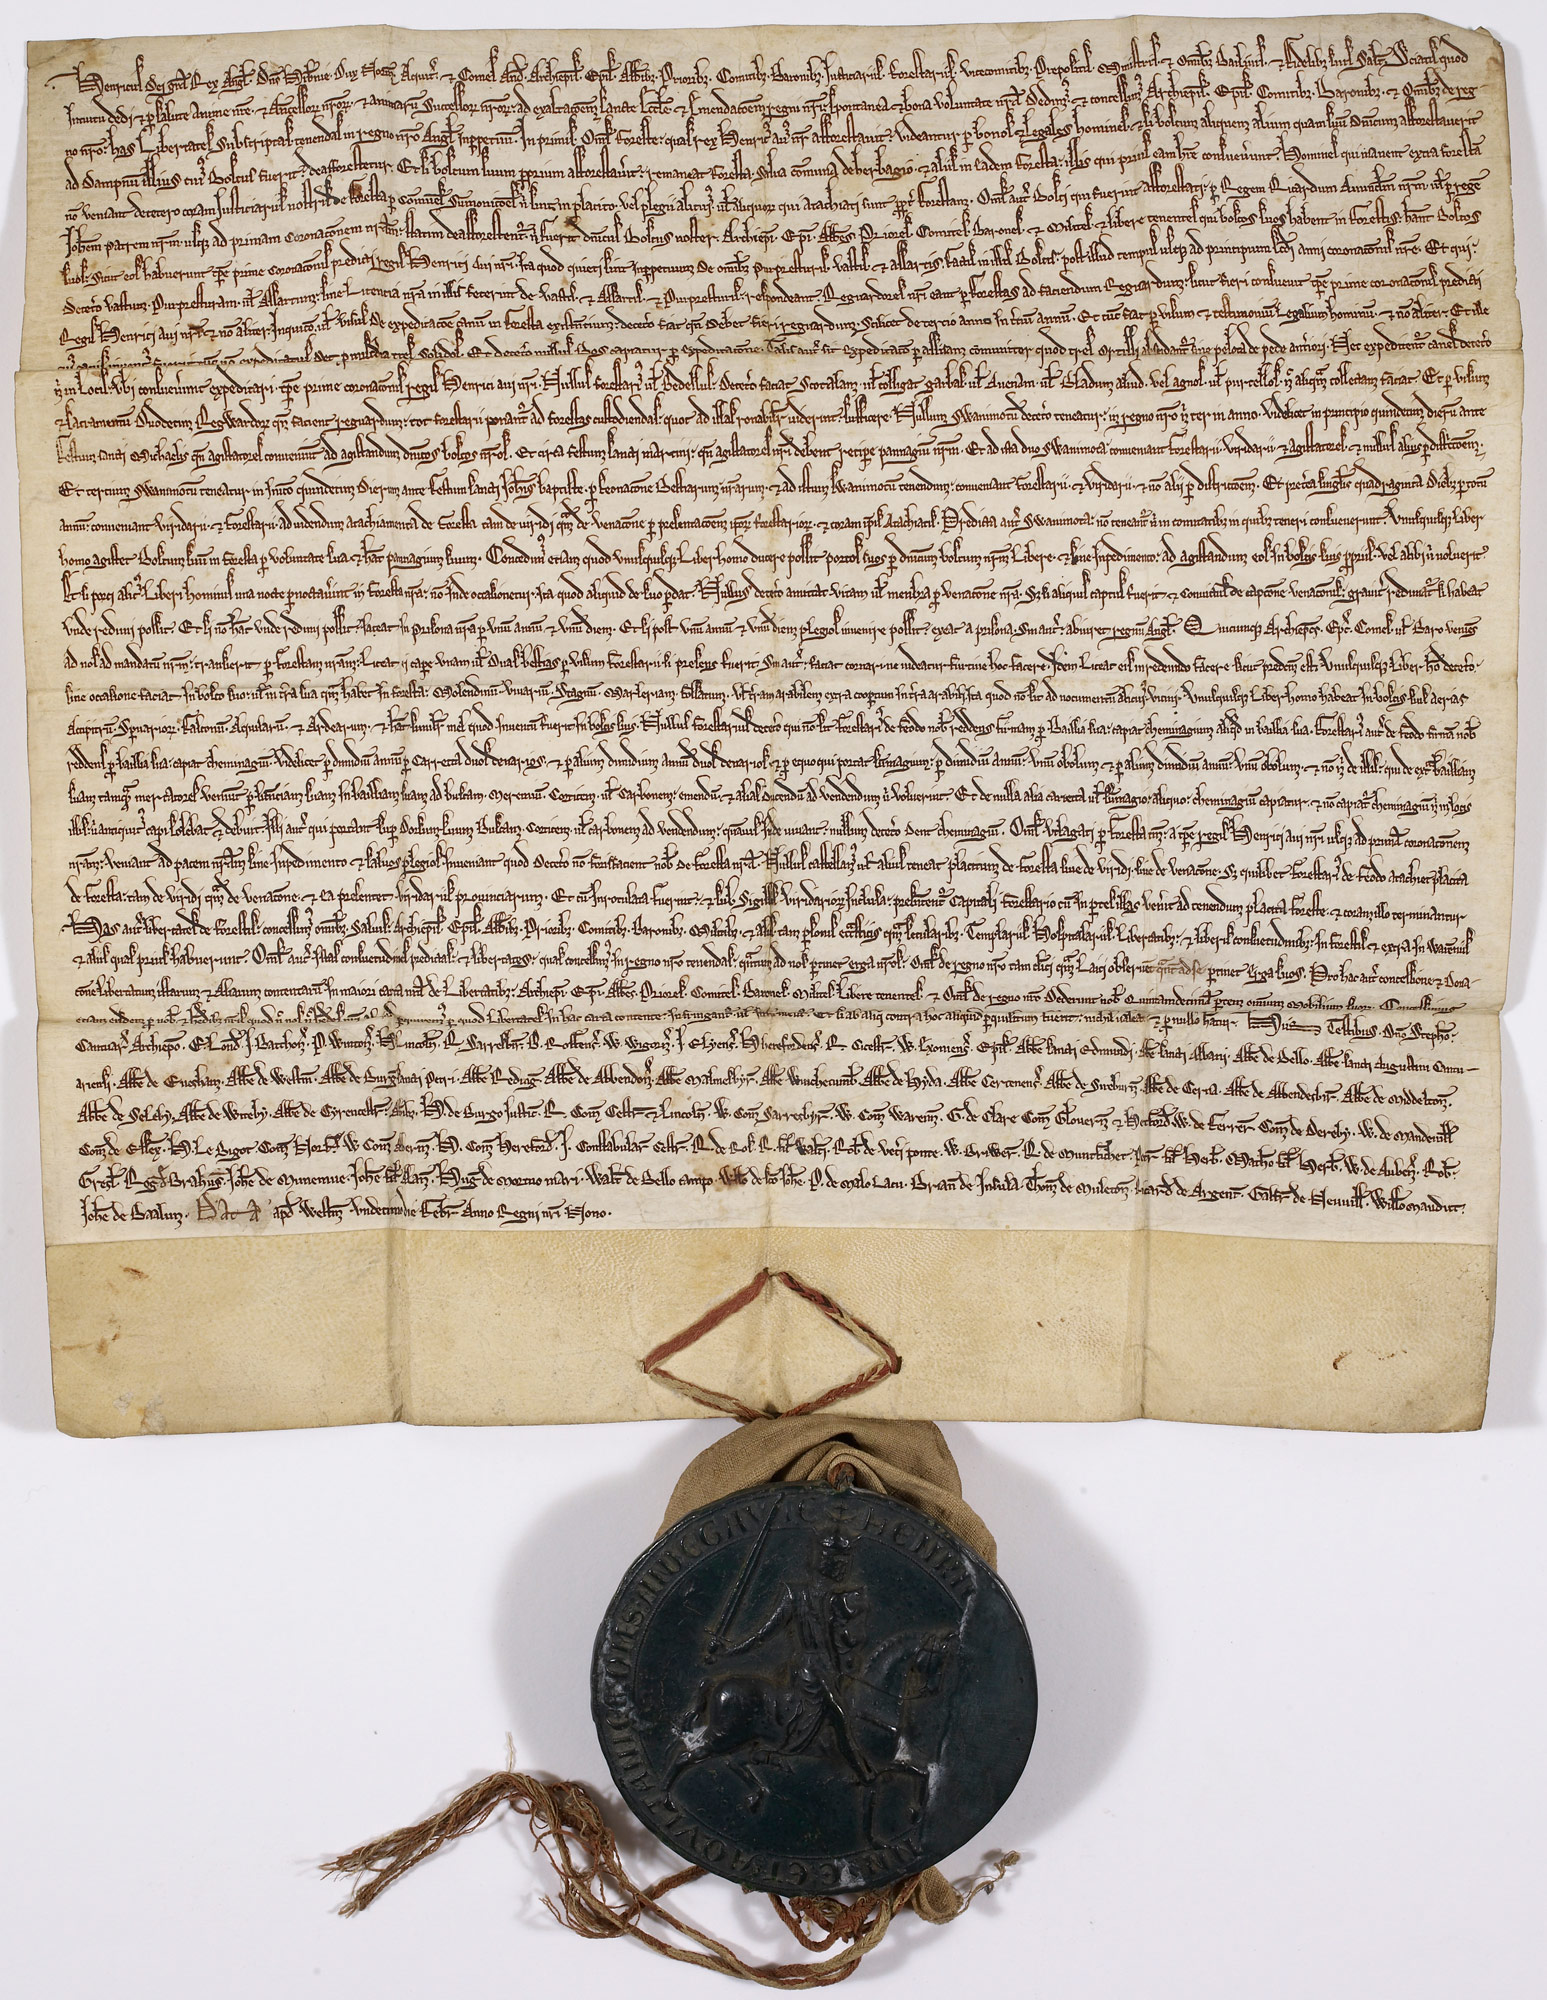 The Forest Charter of 1225